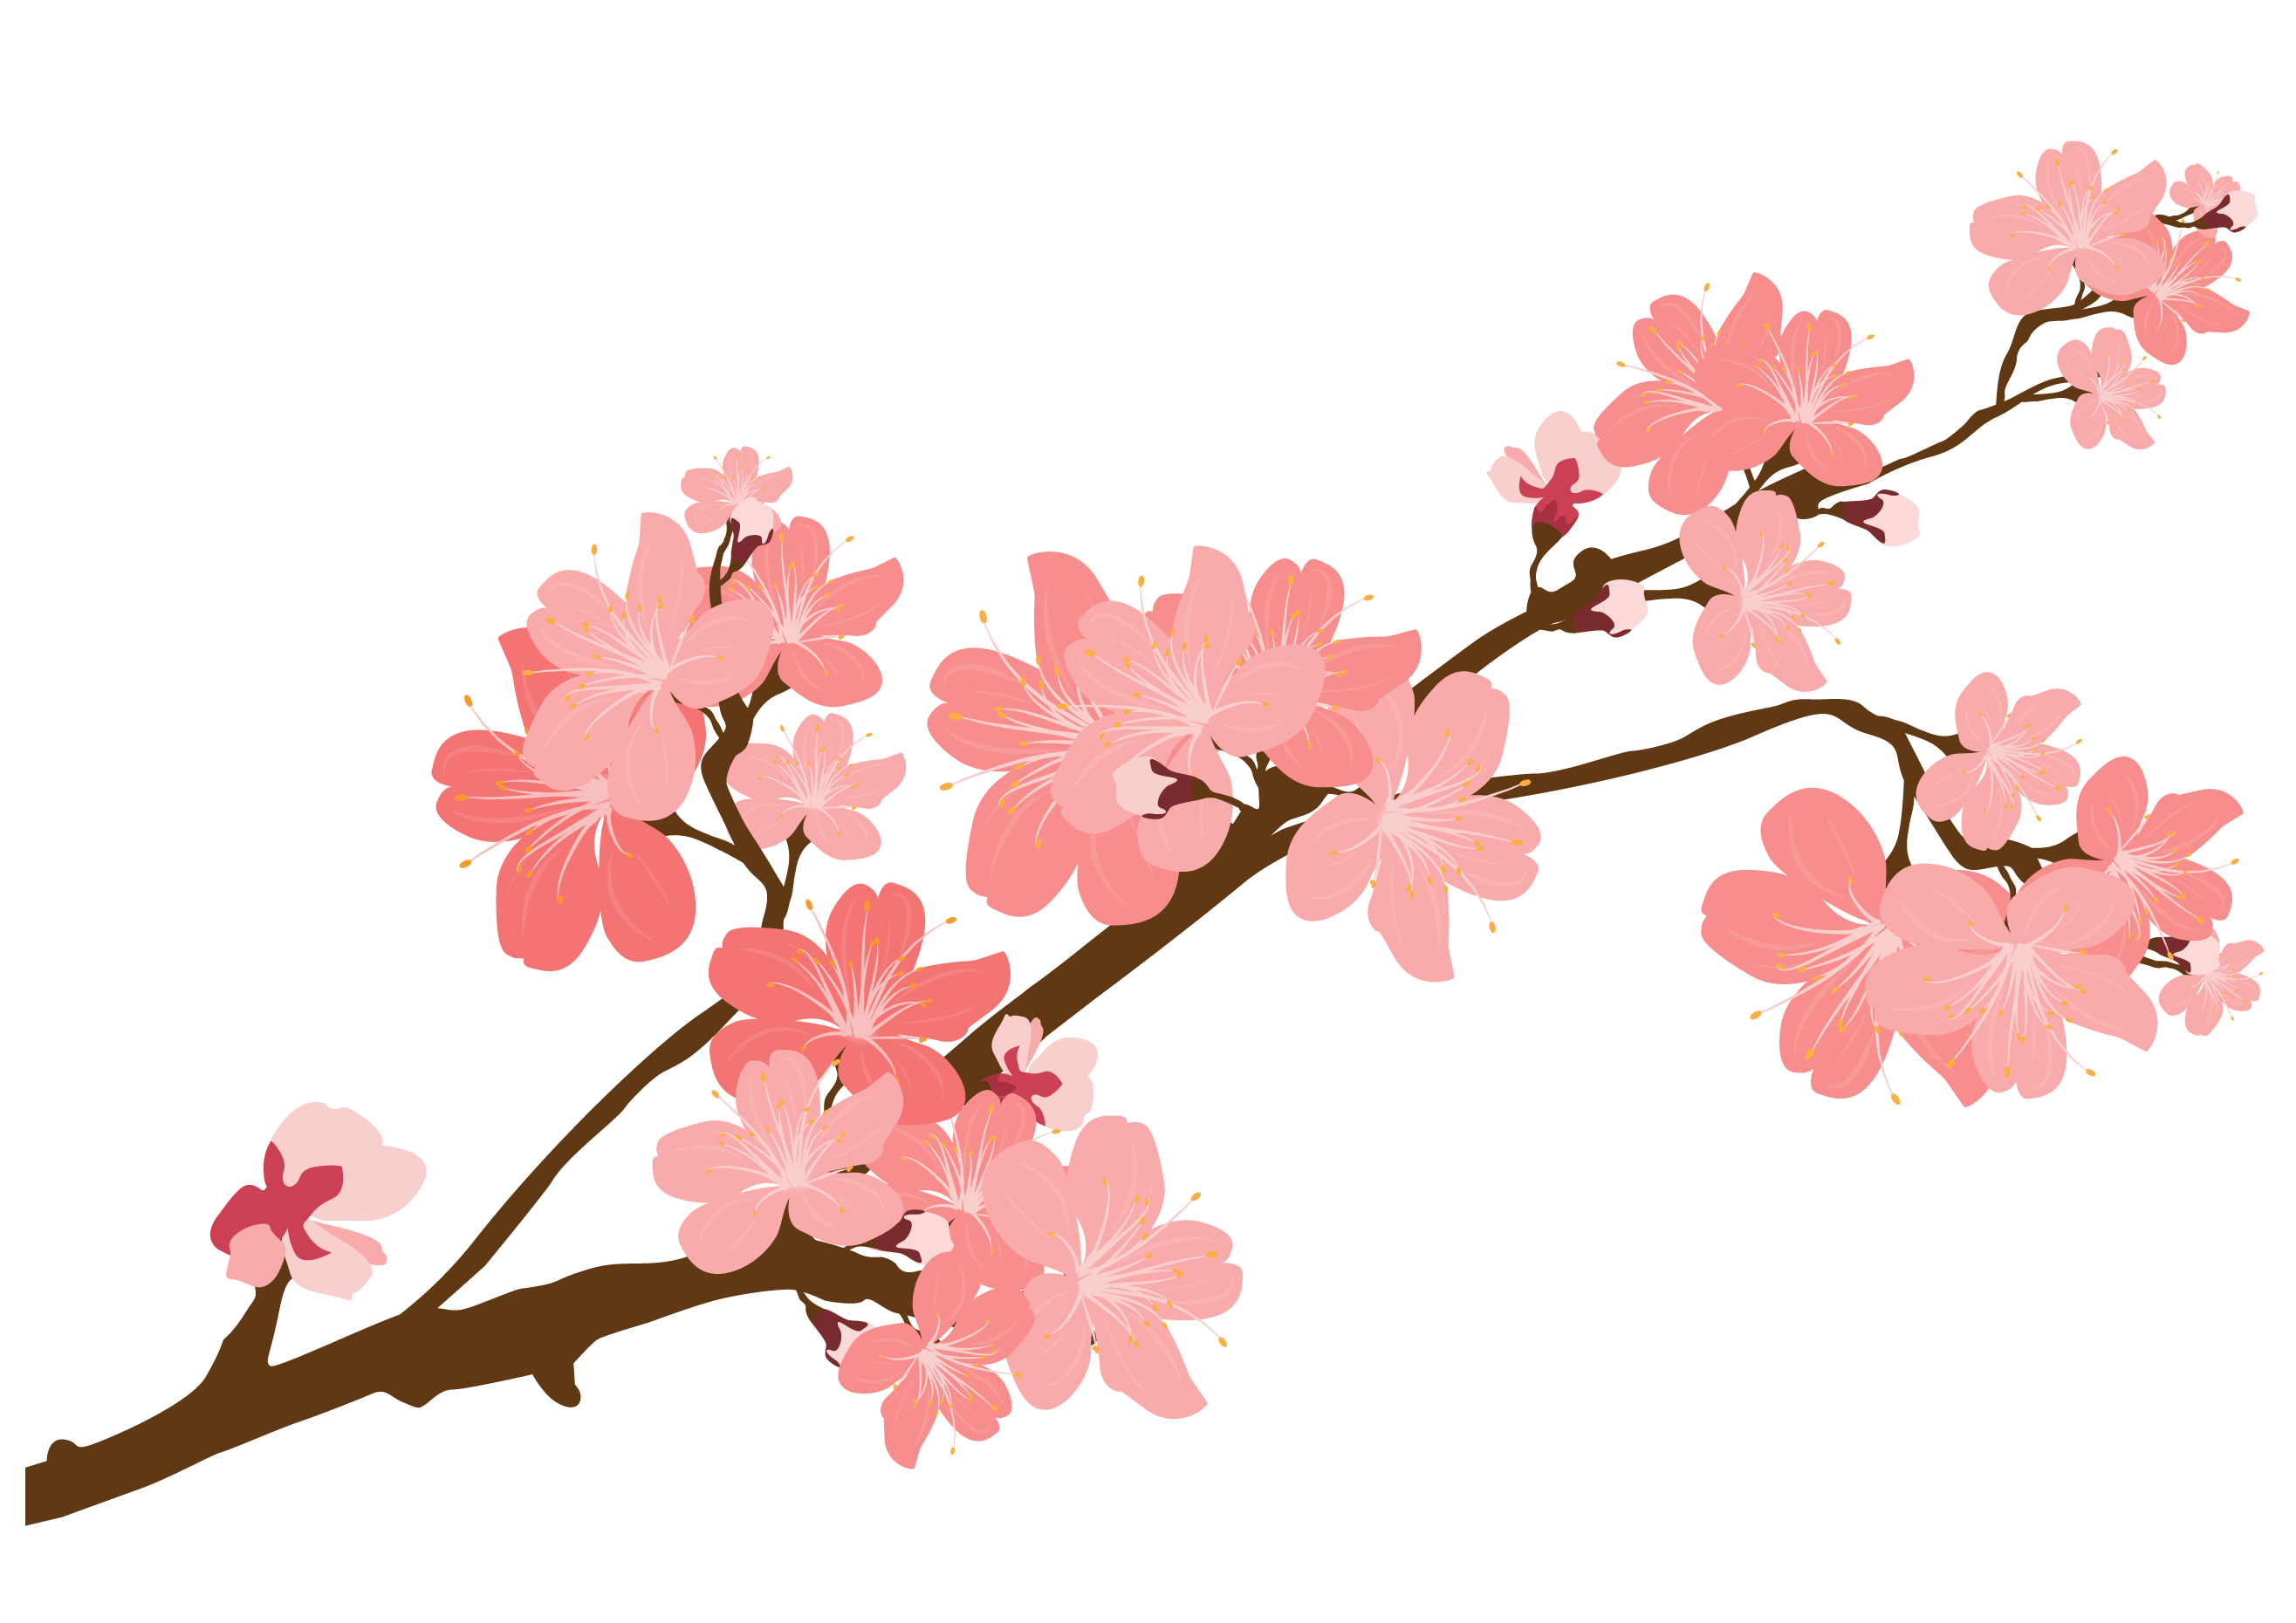 Cherry blossoms png. Blossom sticker clip art